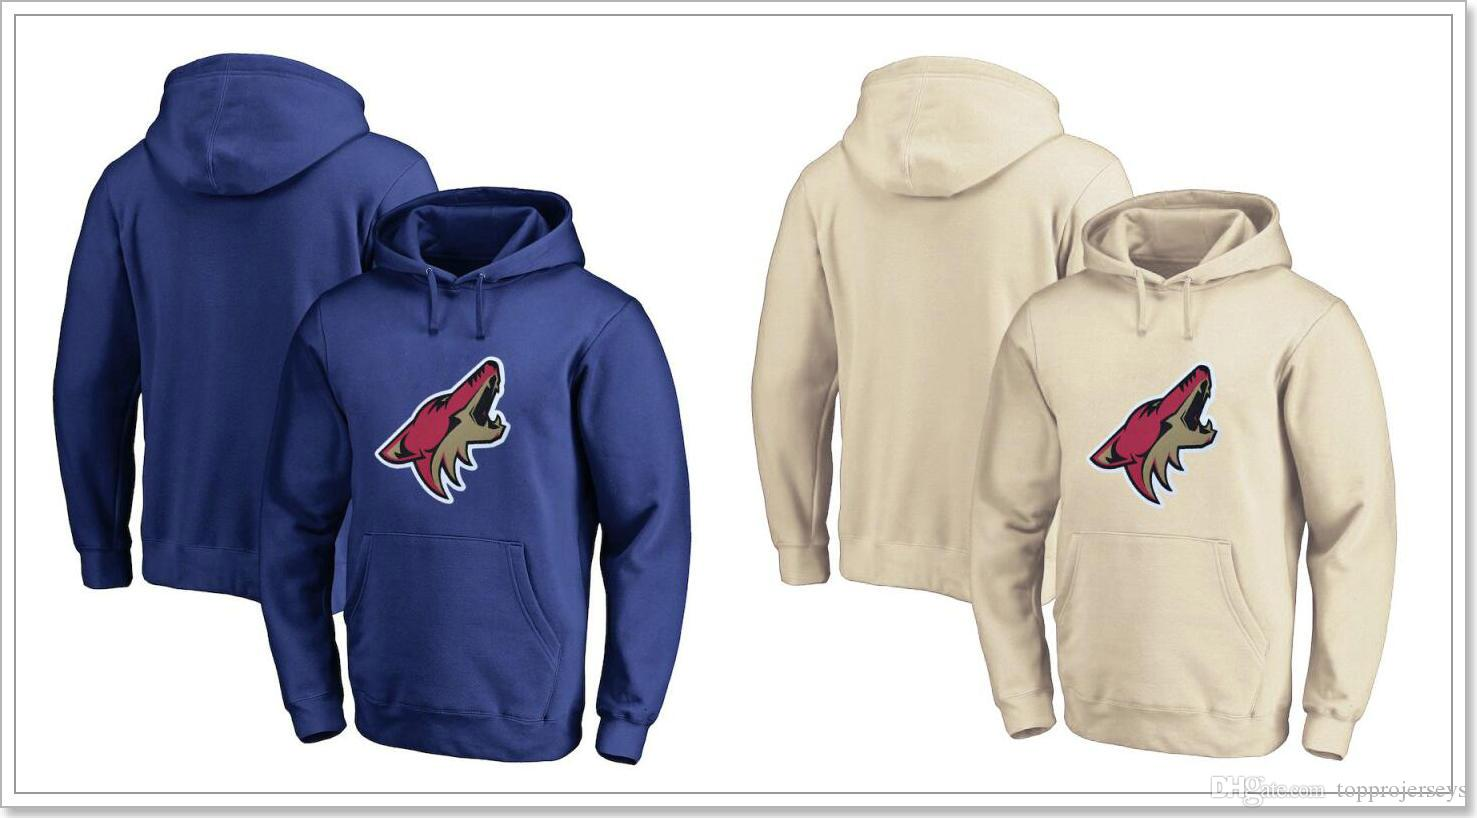 2019 New Arizona Coyotes Team Mens Vintage Ice Hockey Shirts Sweatershirts Uniforms  Hoodies Stitched Embroidery Blank Sports Jerseys For Sale From ... a9b2b11b7